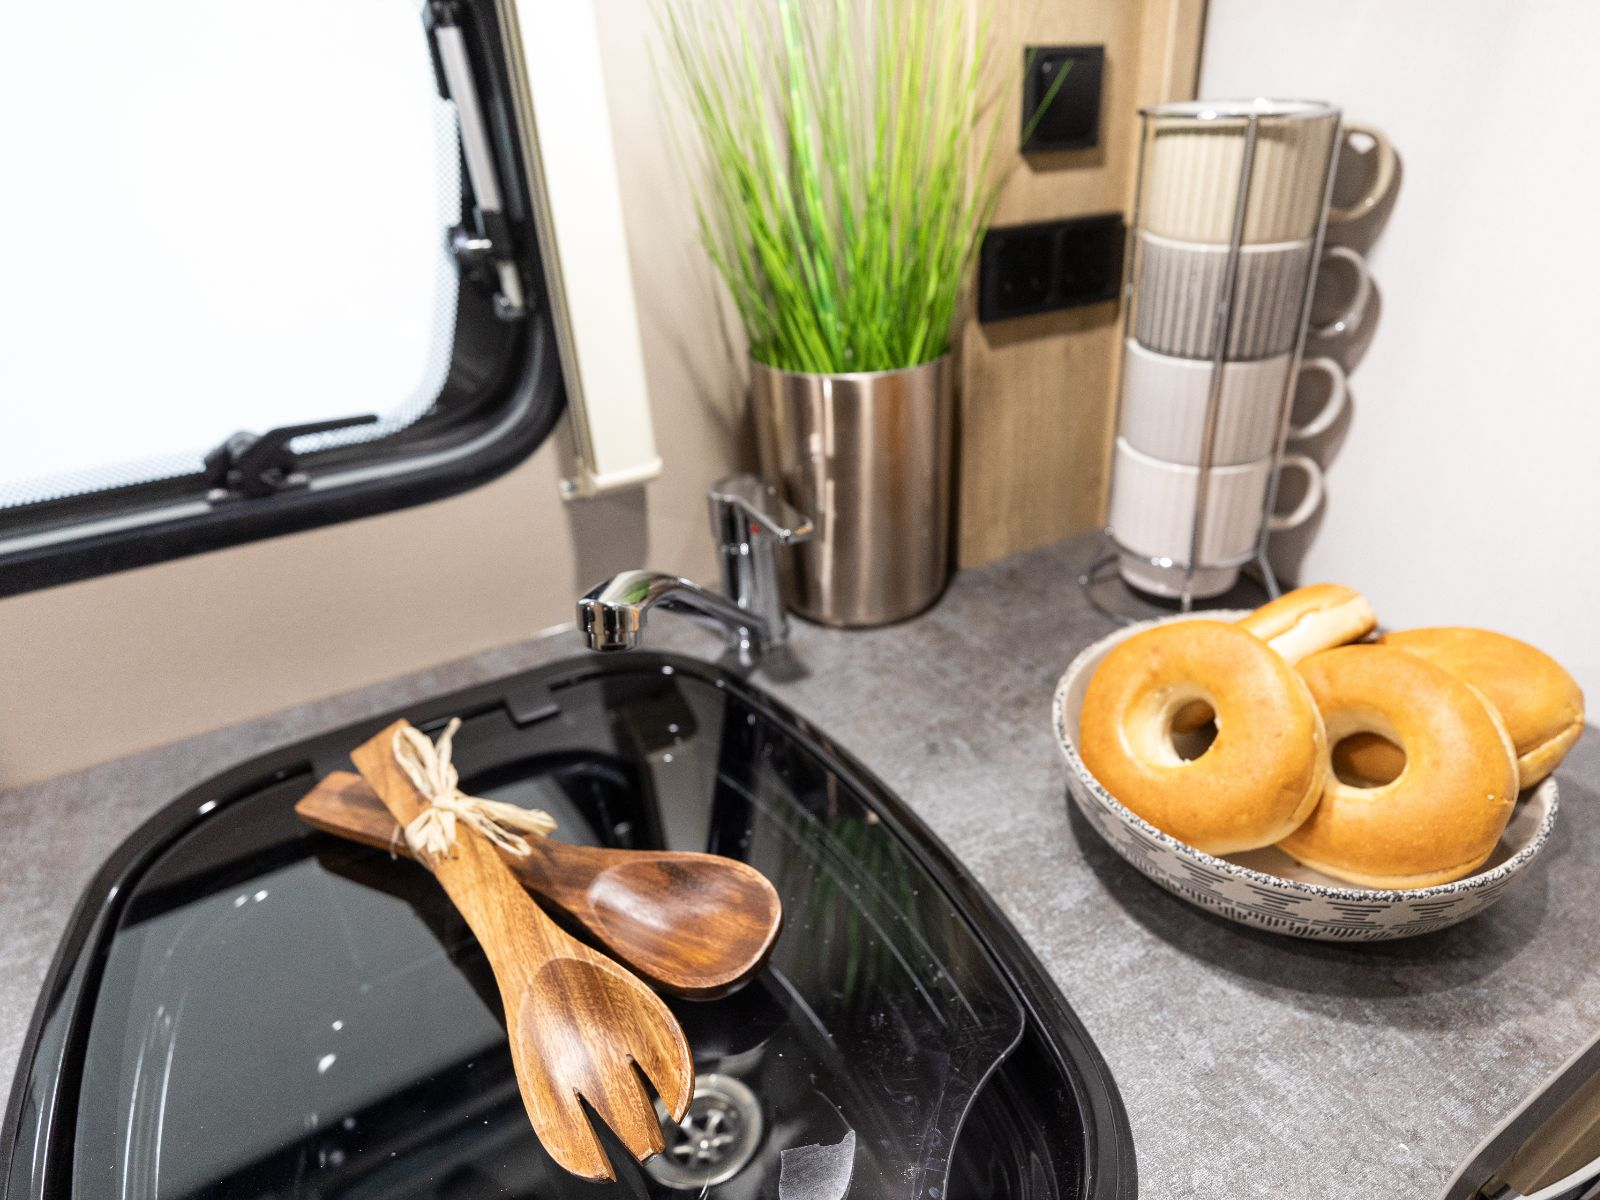 Bowl of Bagels and Kitchen Utensils on Kitchen Counter'